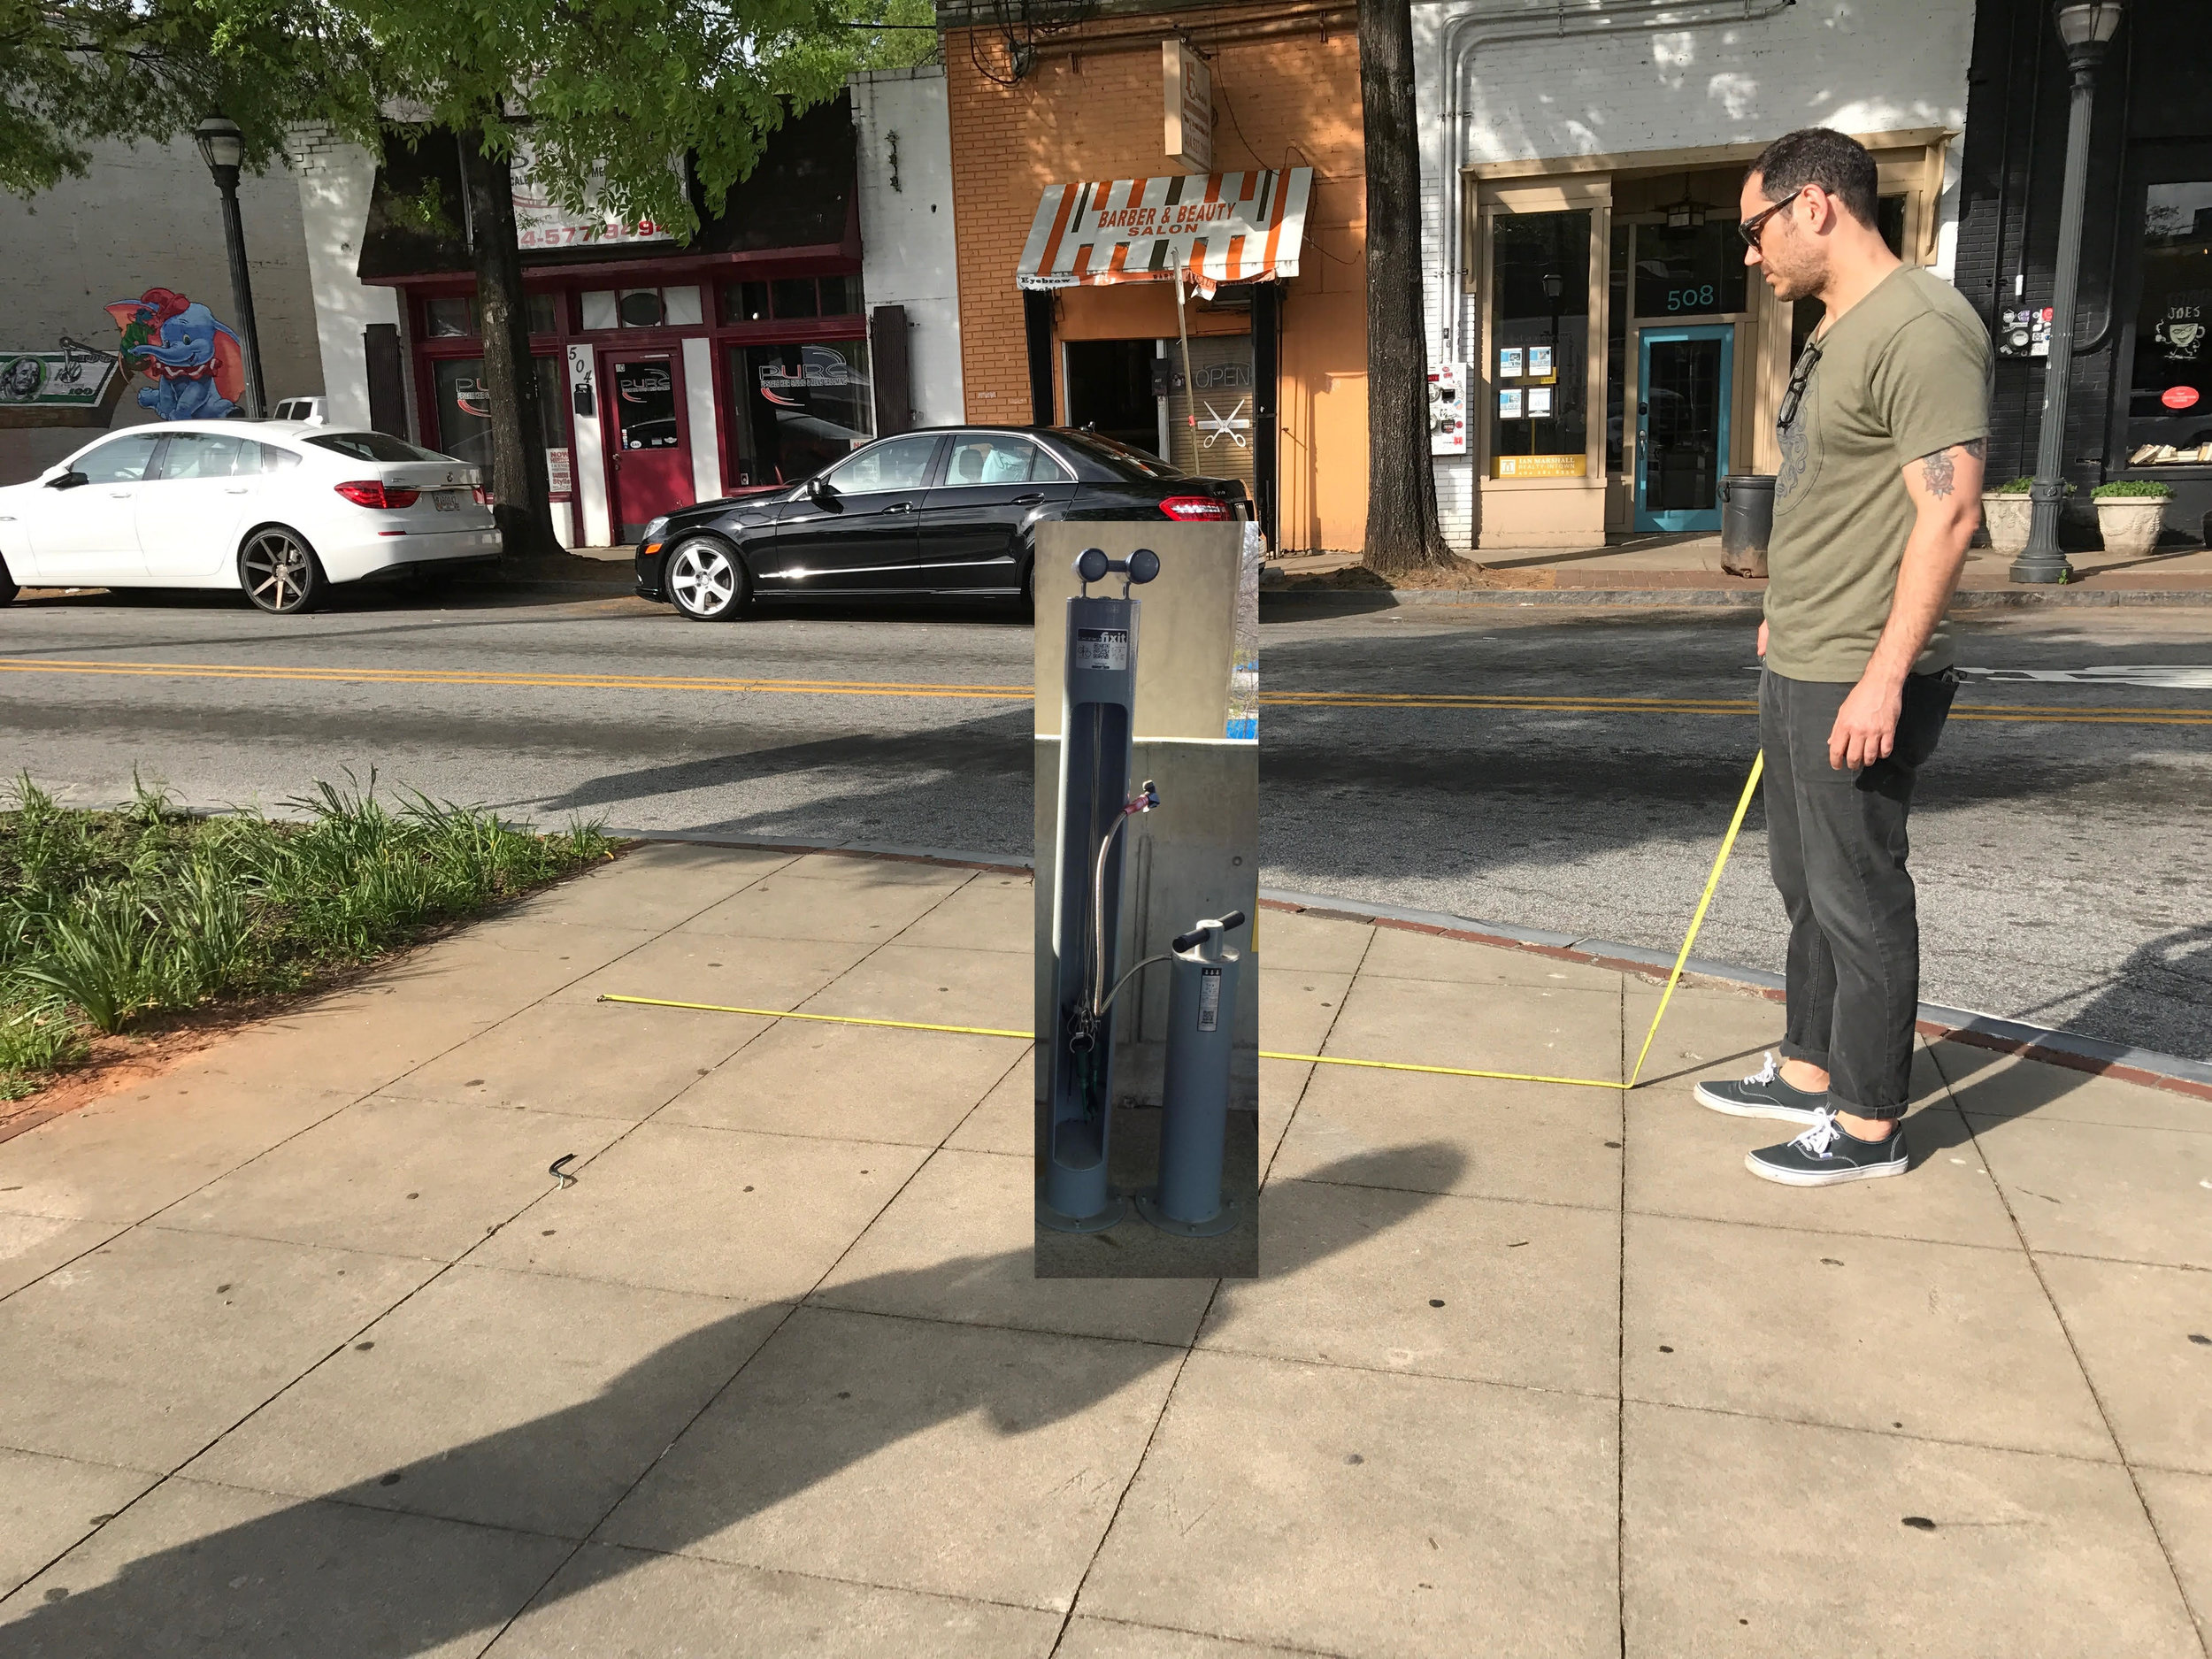 The bike repair station would be located at the corner of Glenwood and Flat Shoals